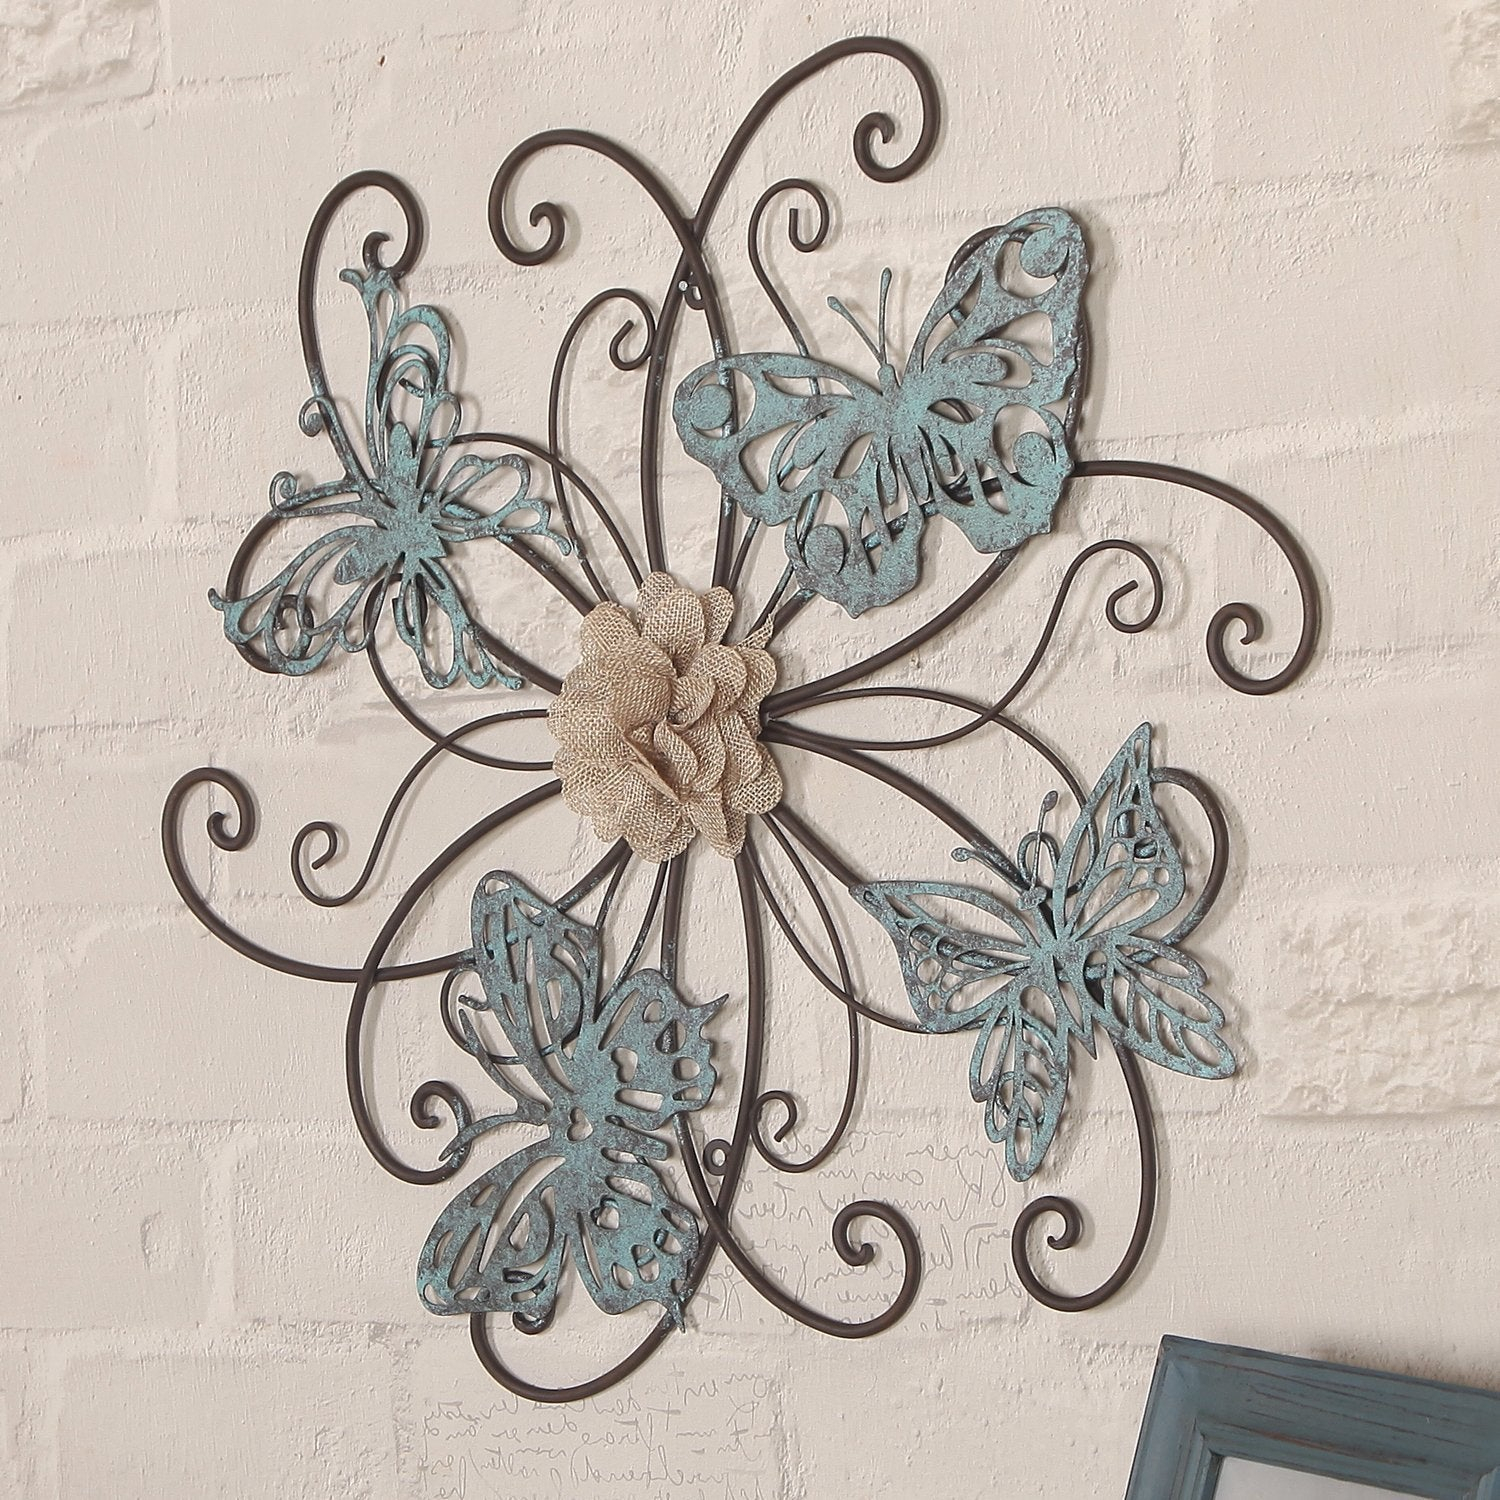 Adeco Flower And Butterfly Urban Design Metal Wall Decor For Nature Home Art inside Flower Urban Design Metal Wall Decor (Image 8 of 30)